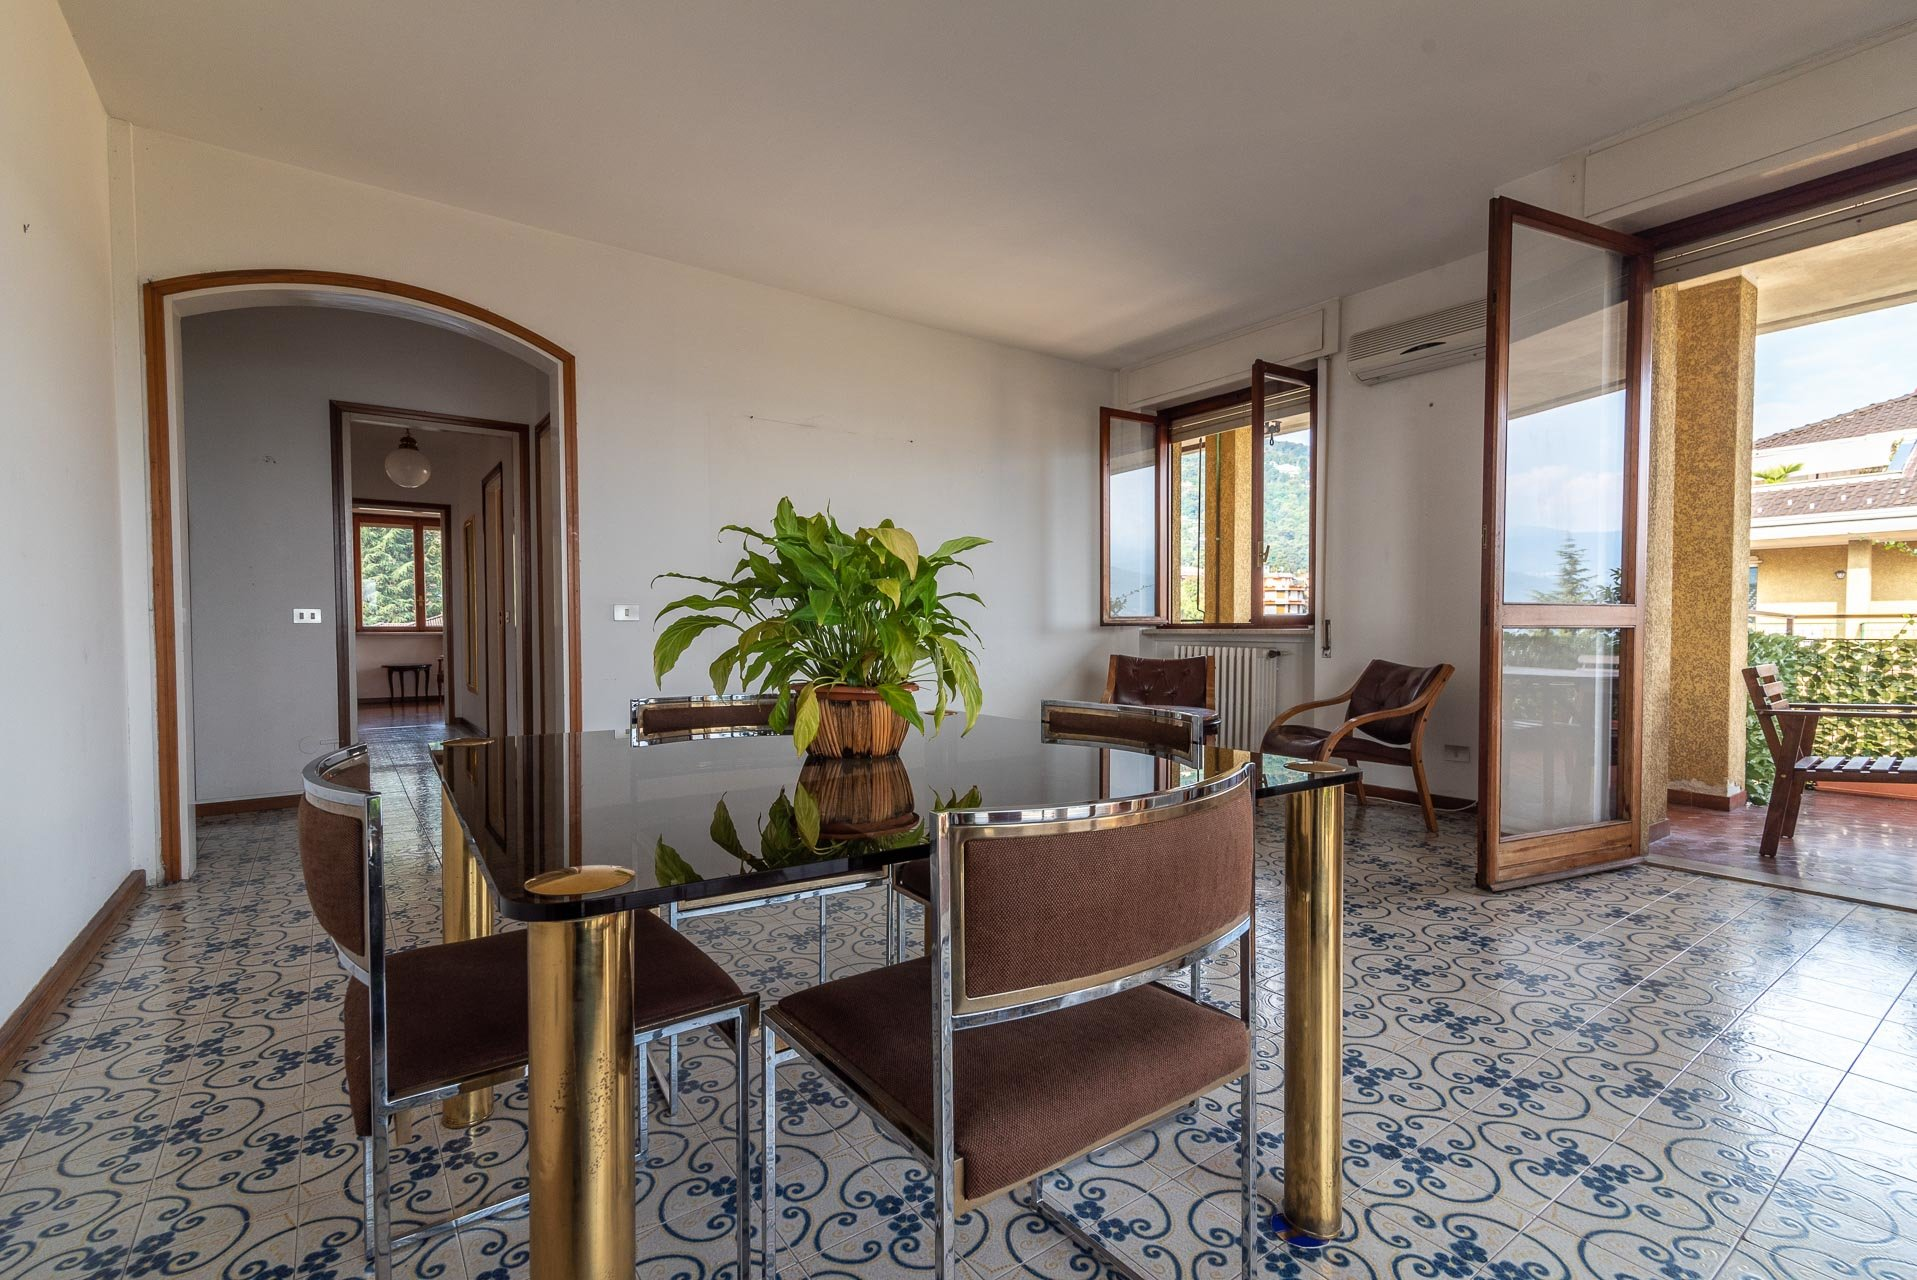 Apartment for rent in Stresa - dining room